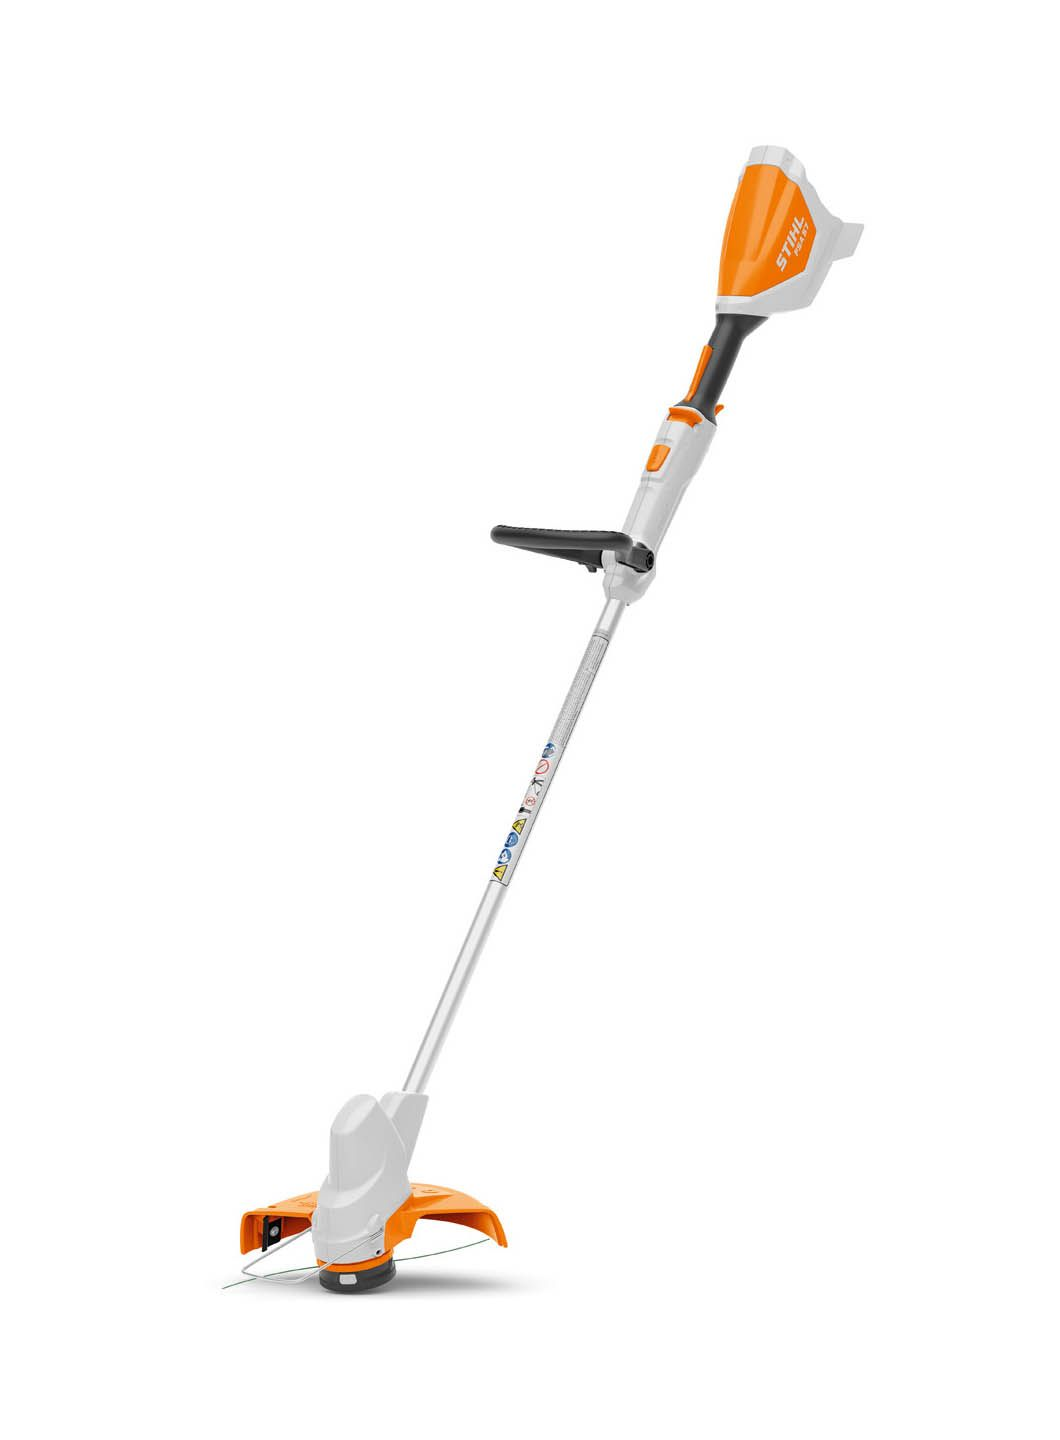 Stihl FSA57 Compact 36v Cordless Grass Trimmer